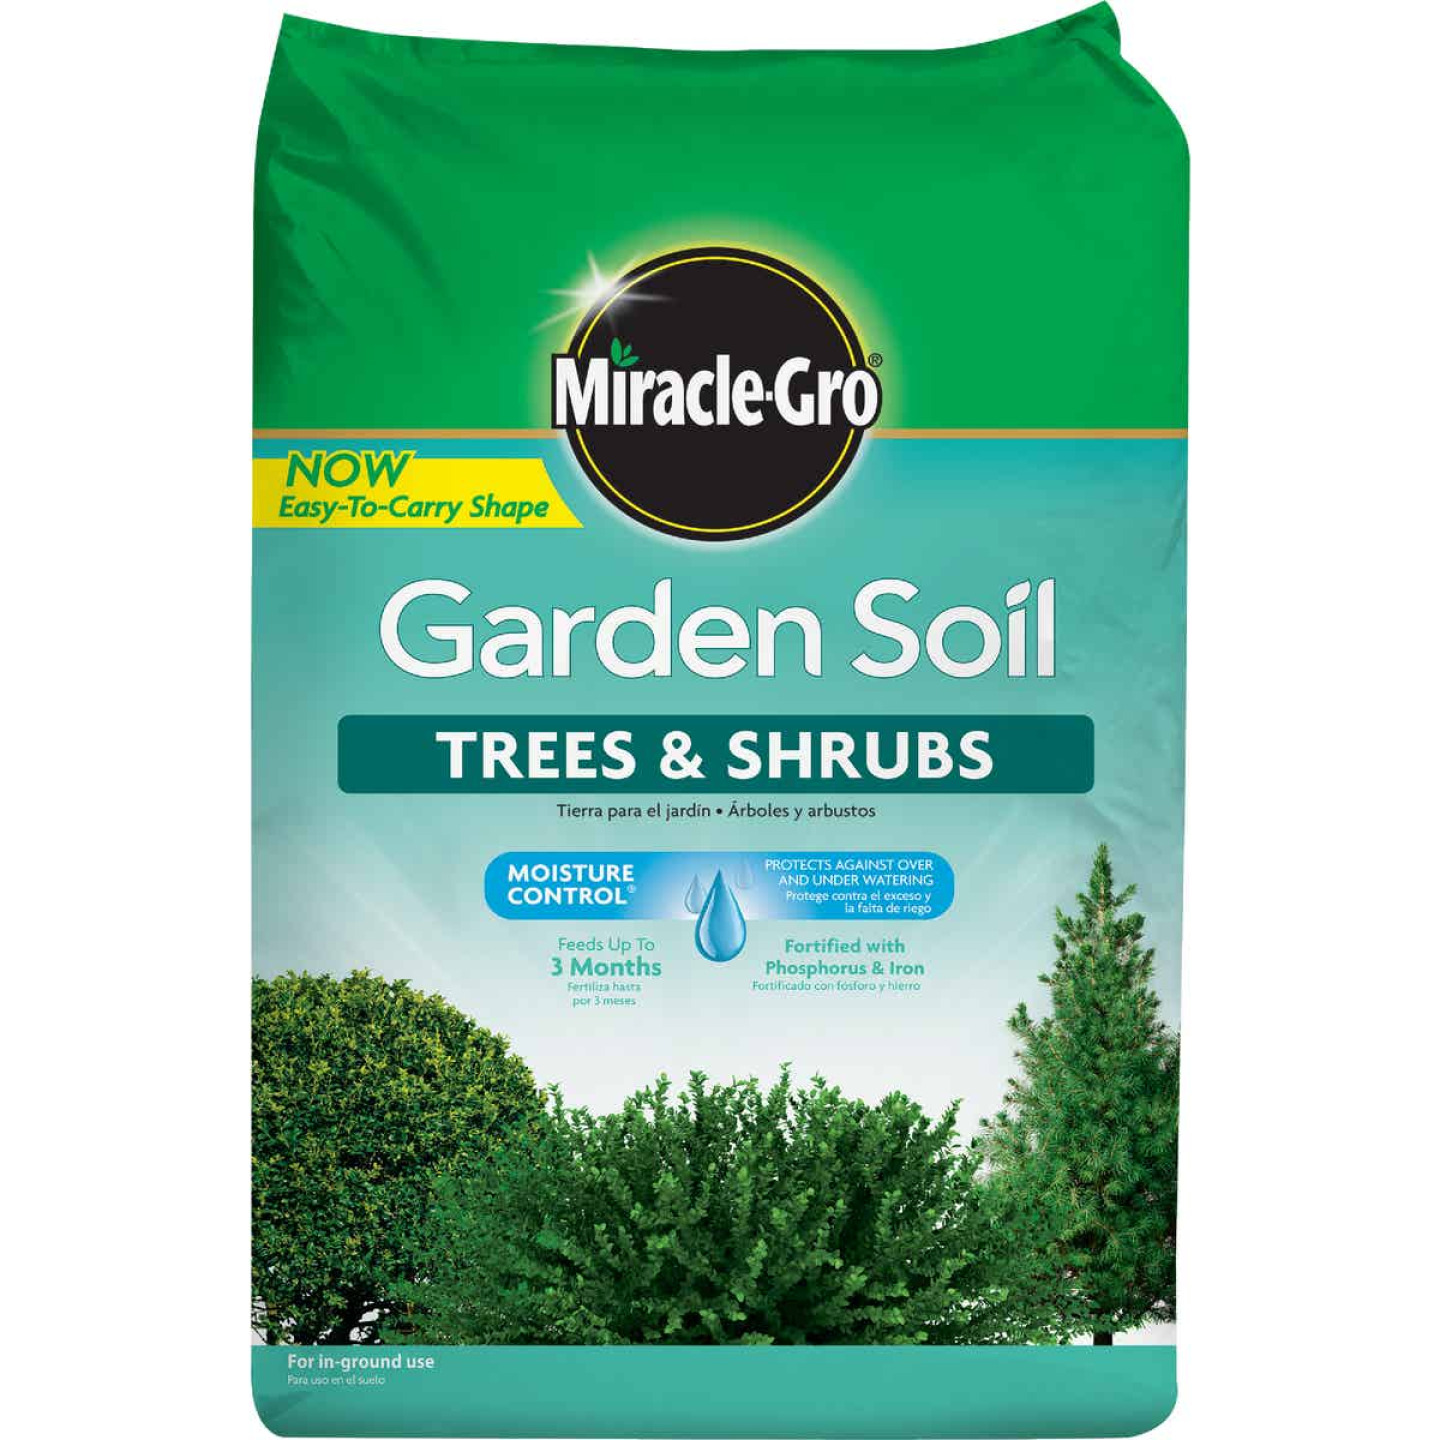 Miracle-Gro 1.5 Cu. Ft. 49 Lb. In-Ground Trees, Shrubs Garden Soil Image 1